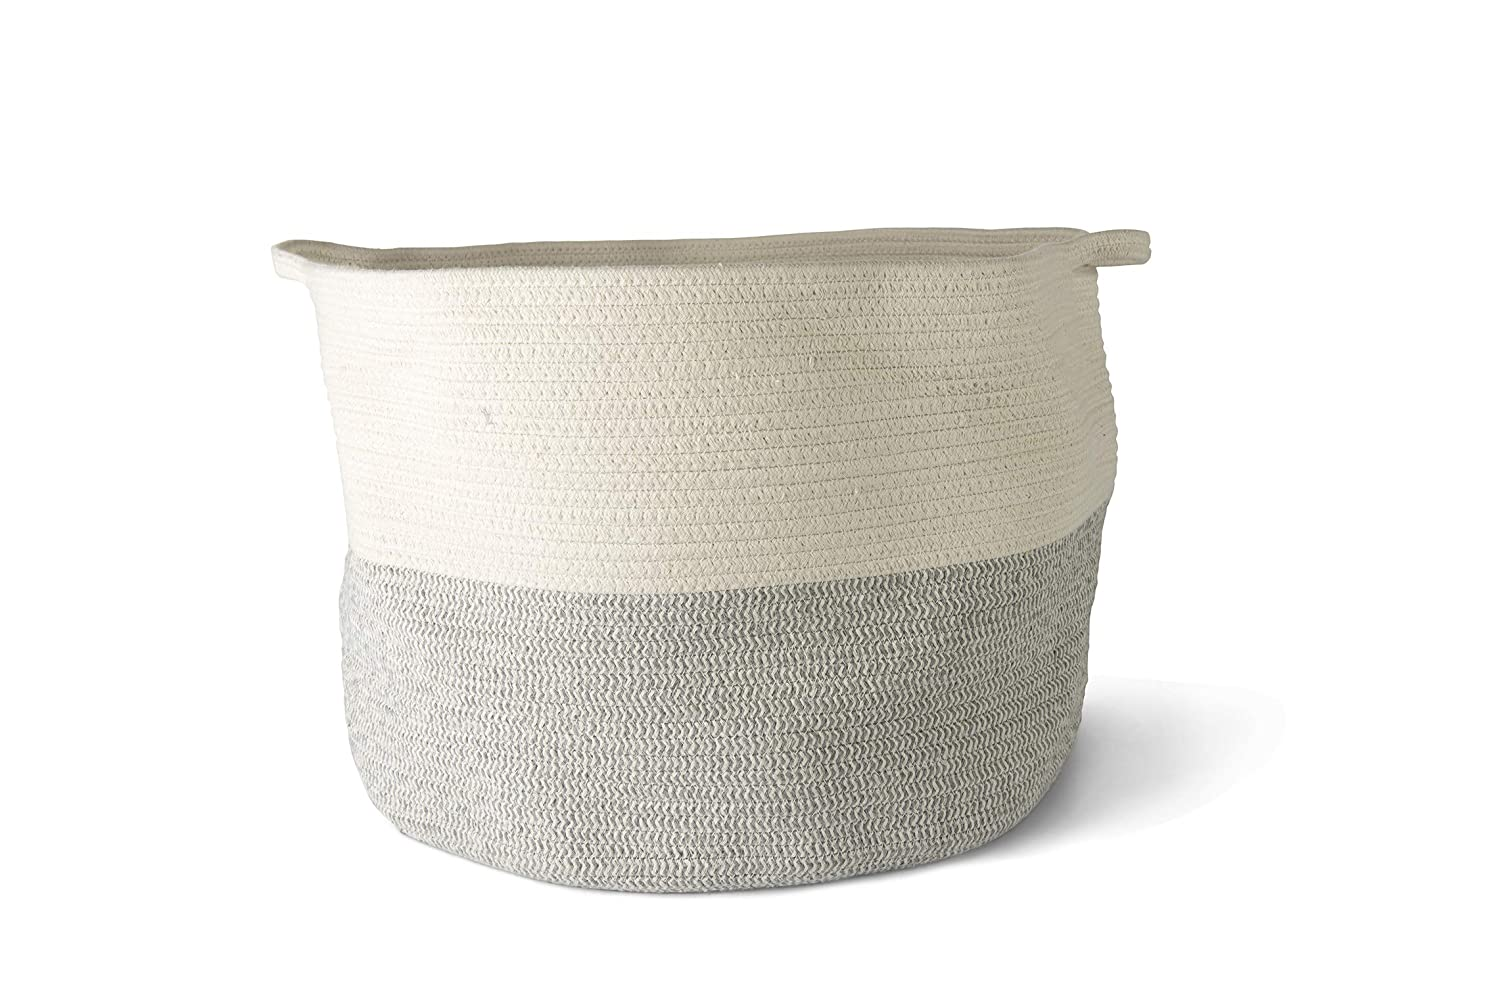 Organic Cotton Rope Basket Storage Woven Baby Laundry Basket with Diaper Toy Cute Neutral Home Décor (XXL)